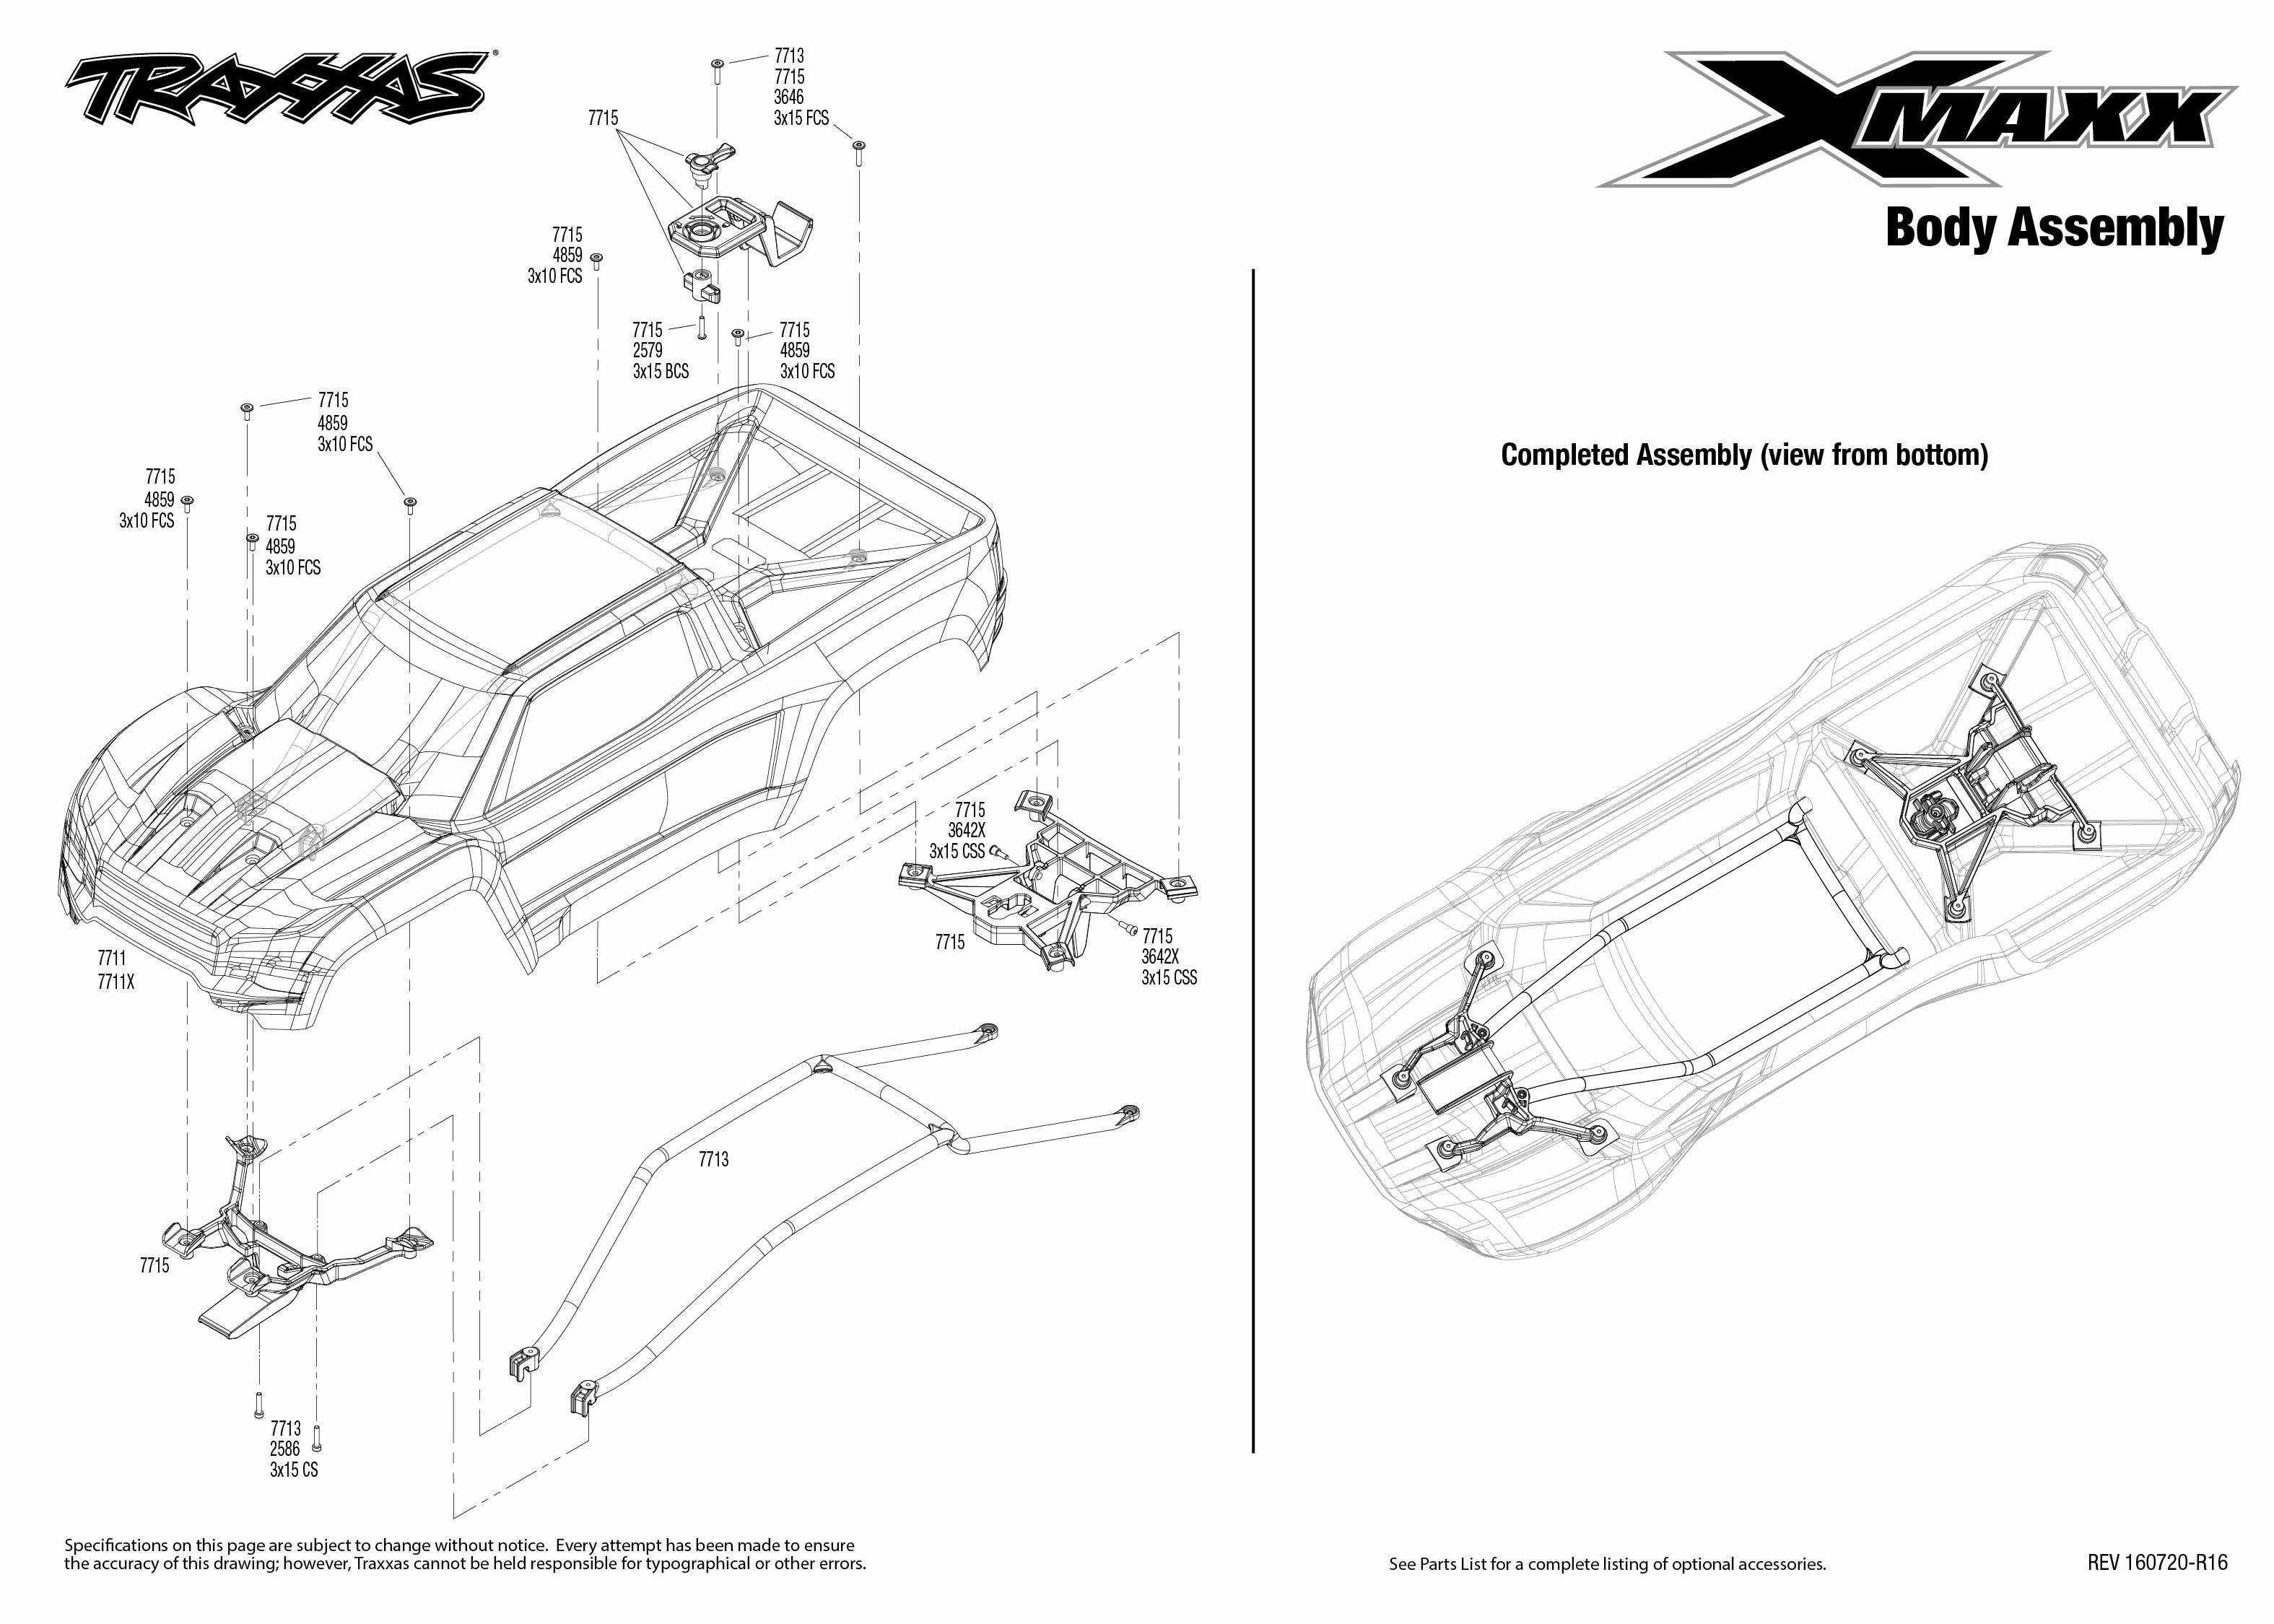 X-Maxx (77076-4) Body Assembly Exploded View | Traxxas